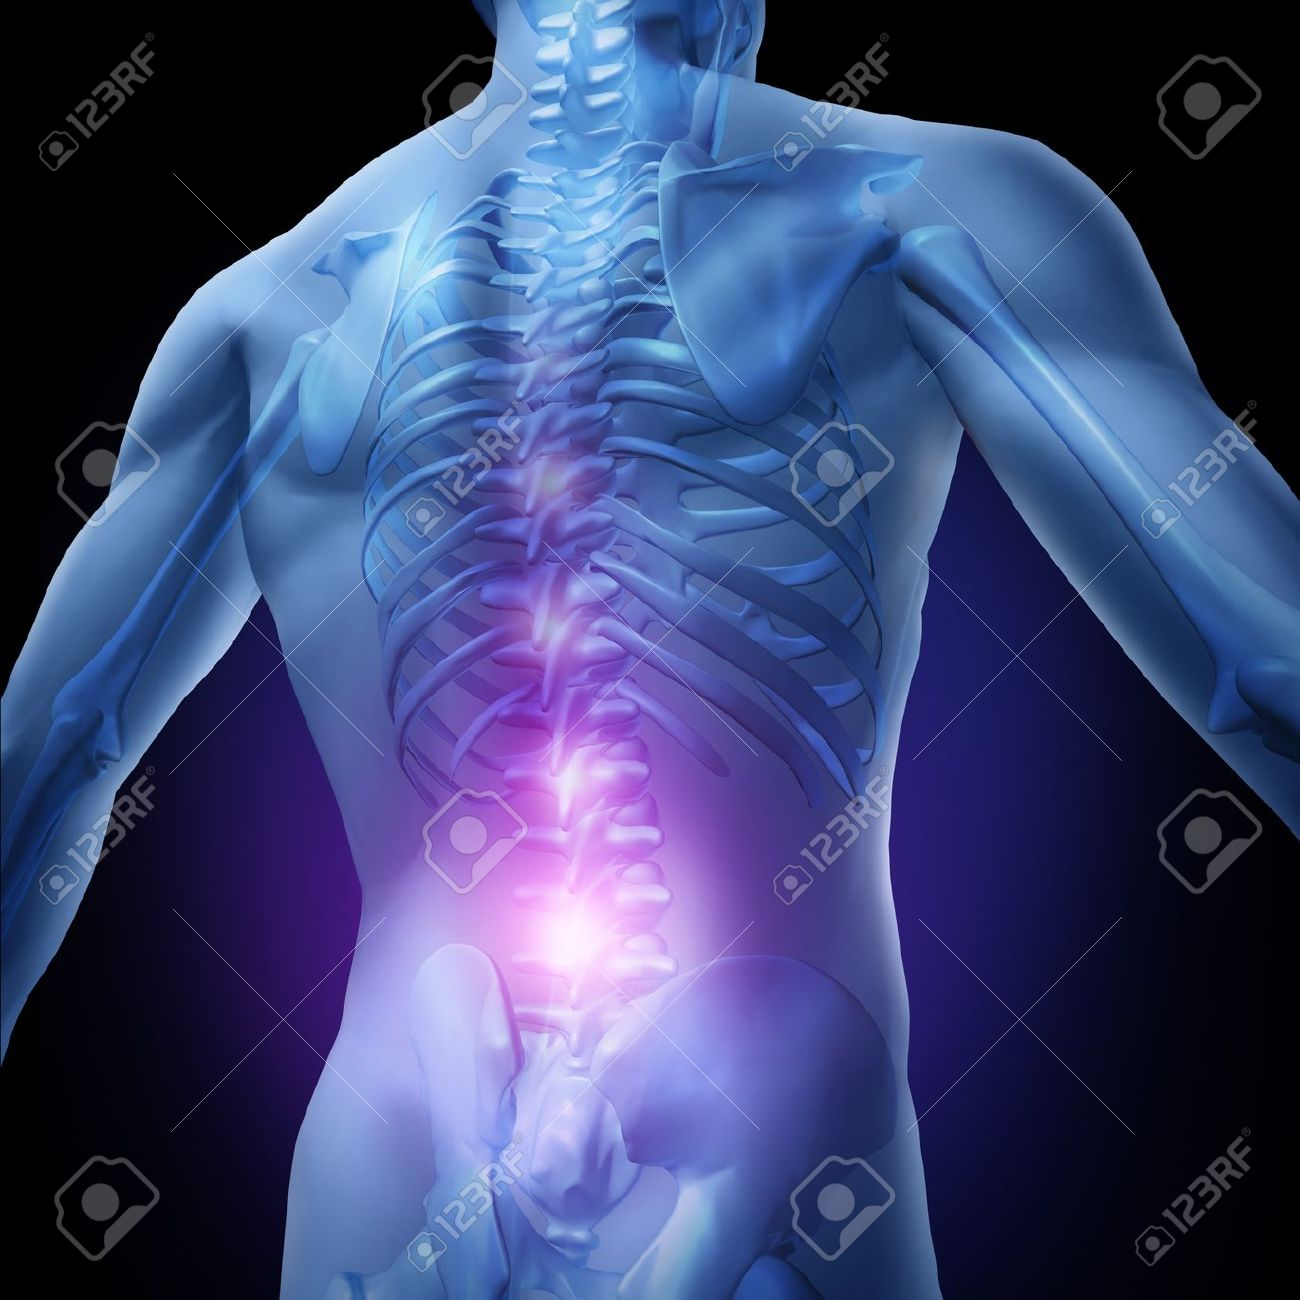 Lower back pain and human backache with an upper torso body skeleton showing the spine and vertebral column in glowing highlight as a medical health care concept for spinal surgery and therapy. Stock Photo - 12353898